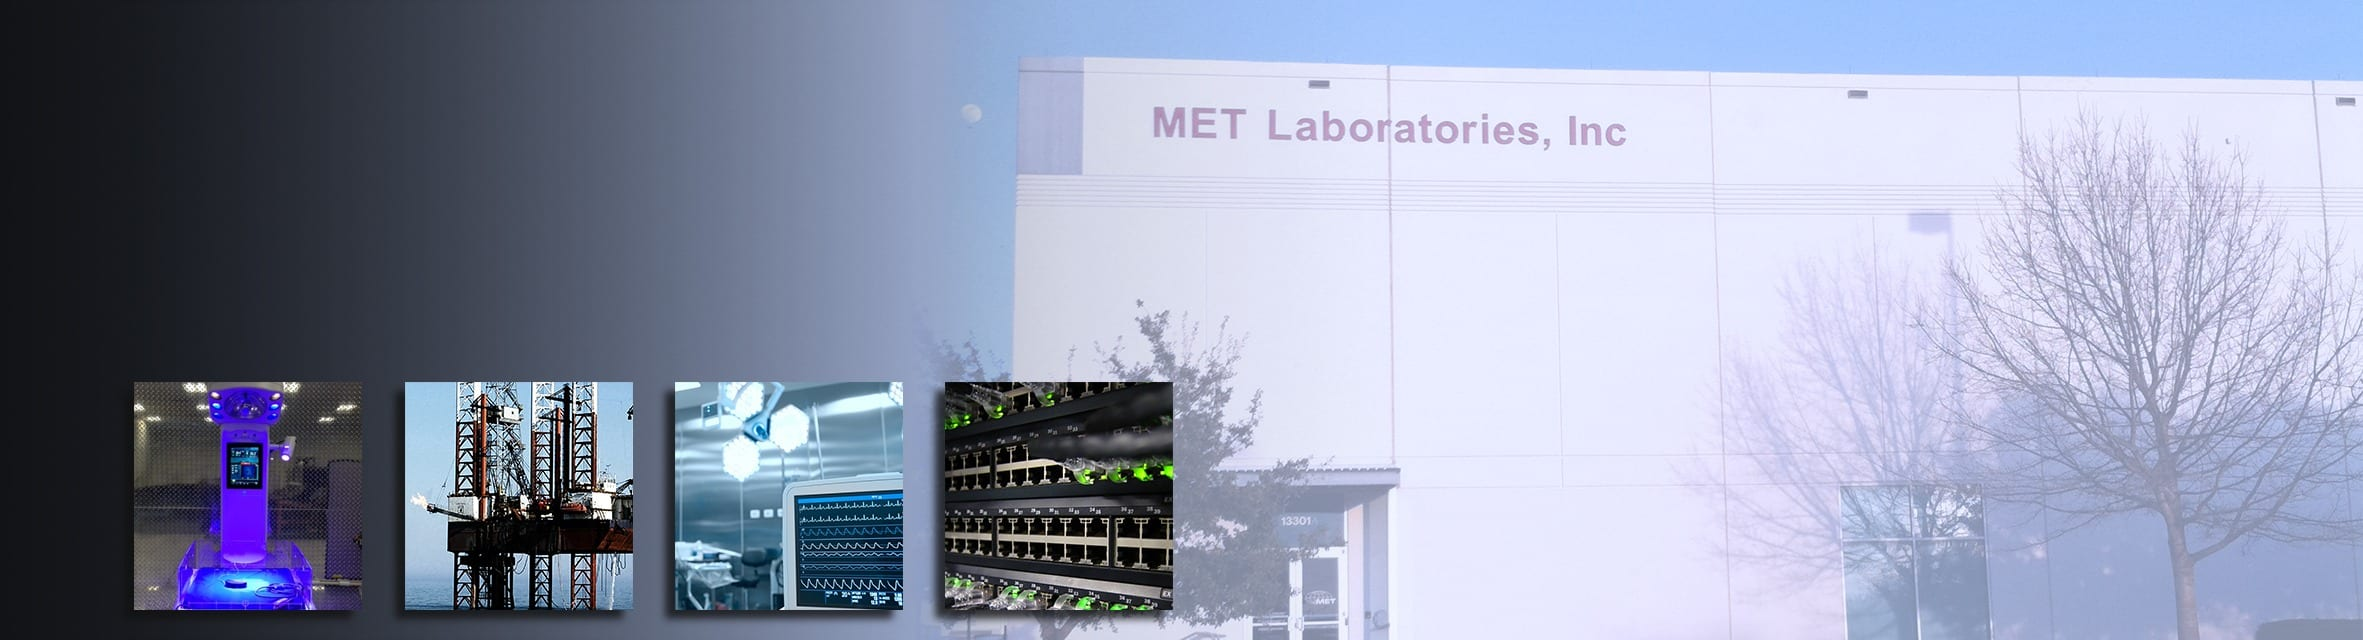 MET Labs Texas Medical Device Testing